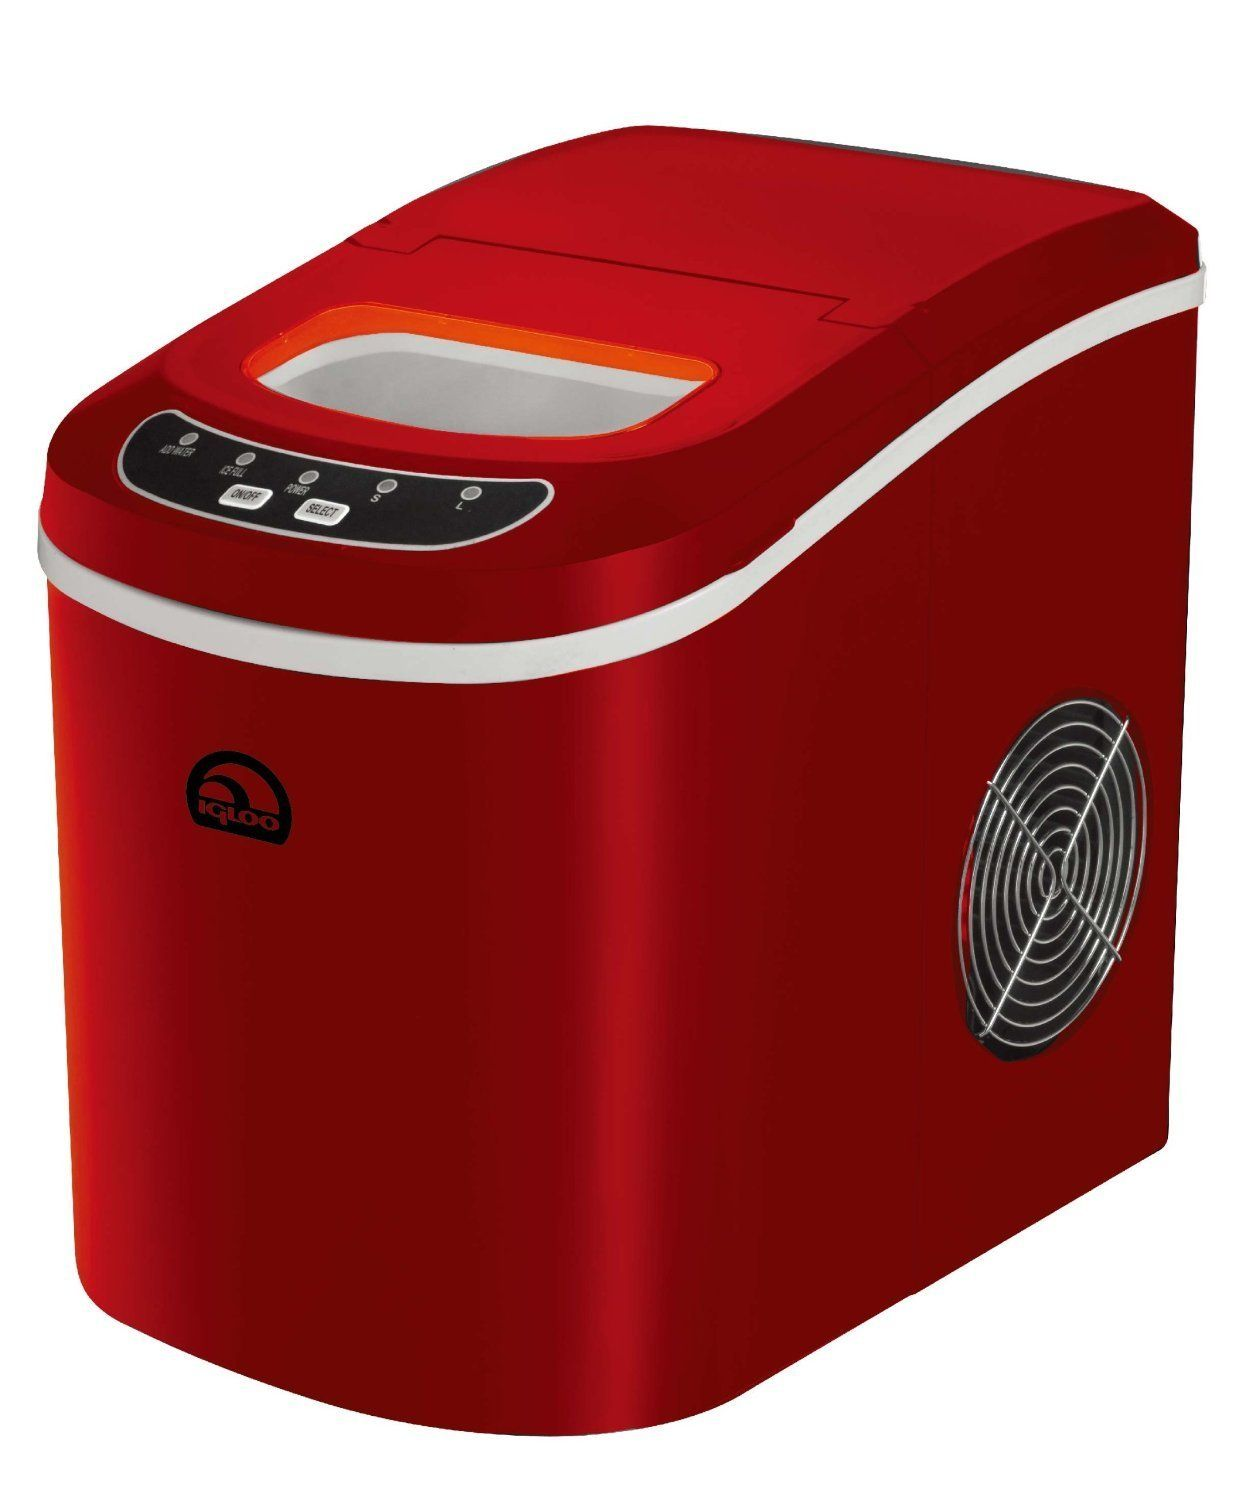 Igloo Ice102 Red Compact Ice Maker Red Certified Refurbished